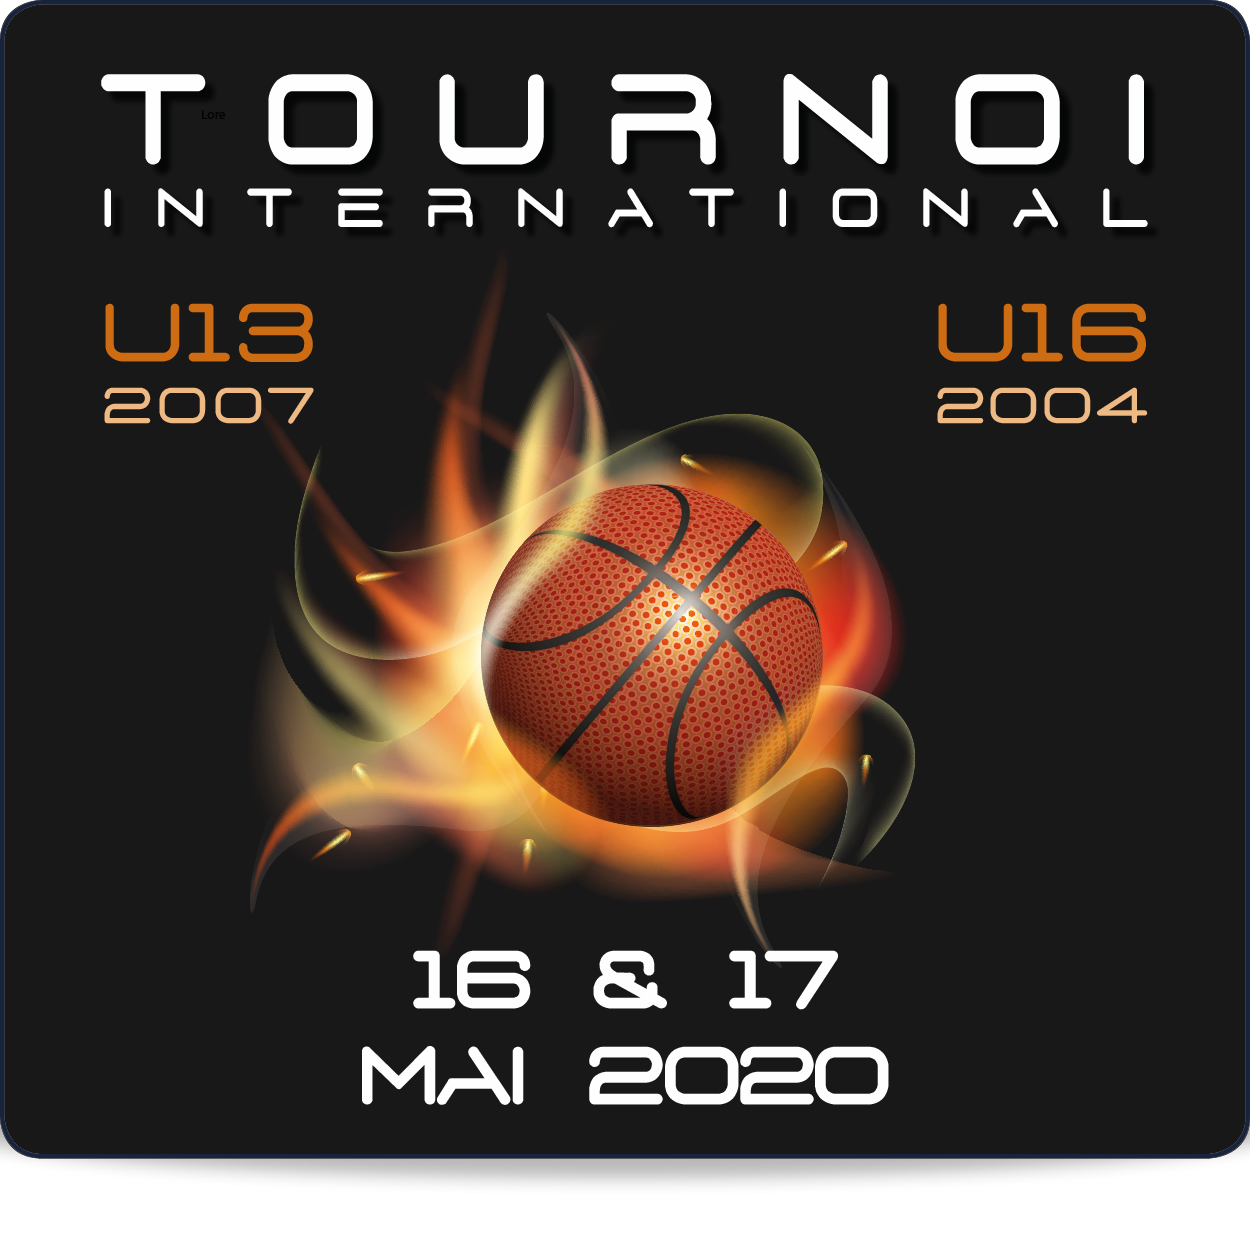 Tournoi International U12 - U13 - U16